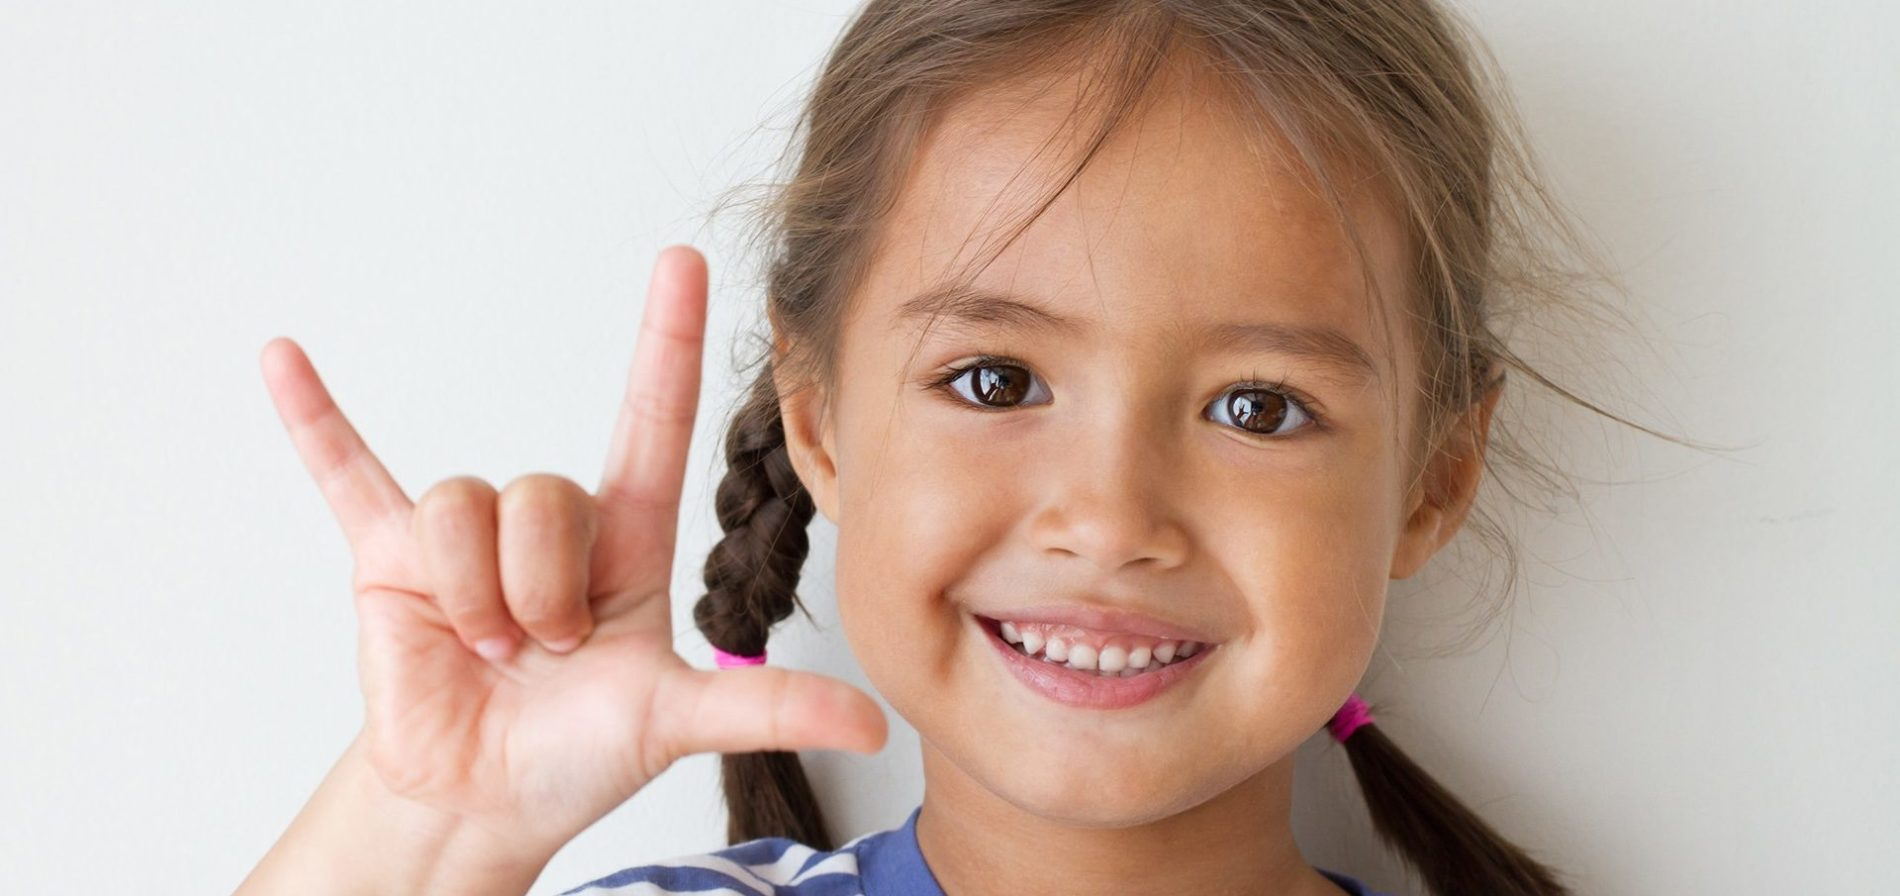 cute little girl showing I love you hand sign